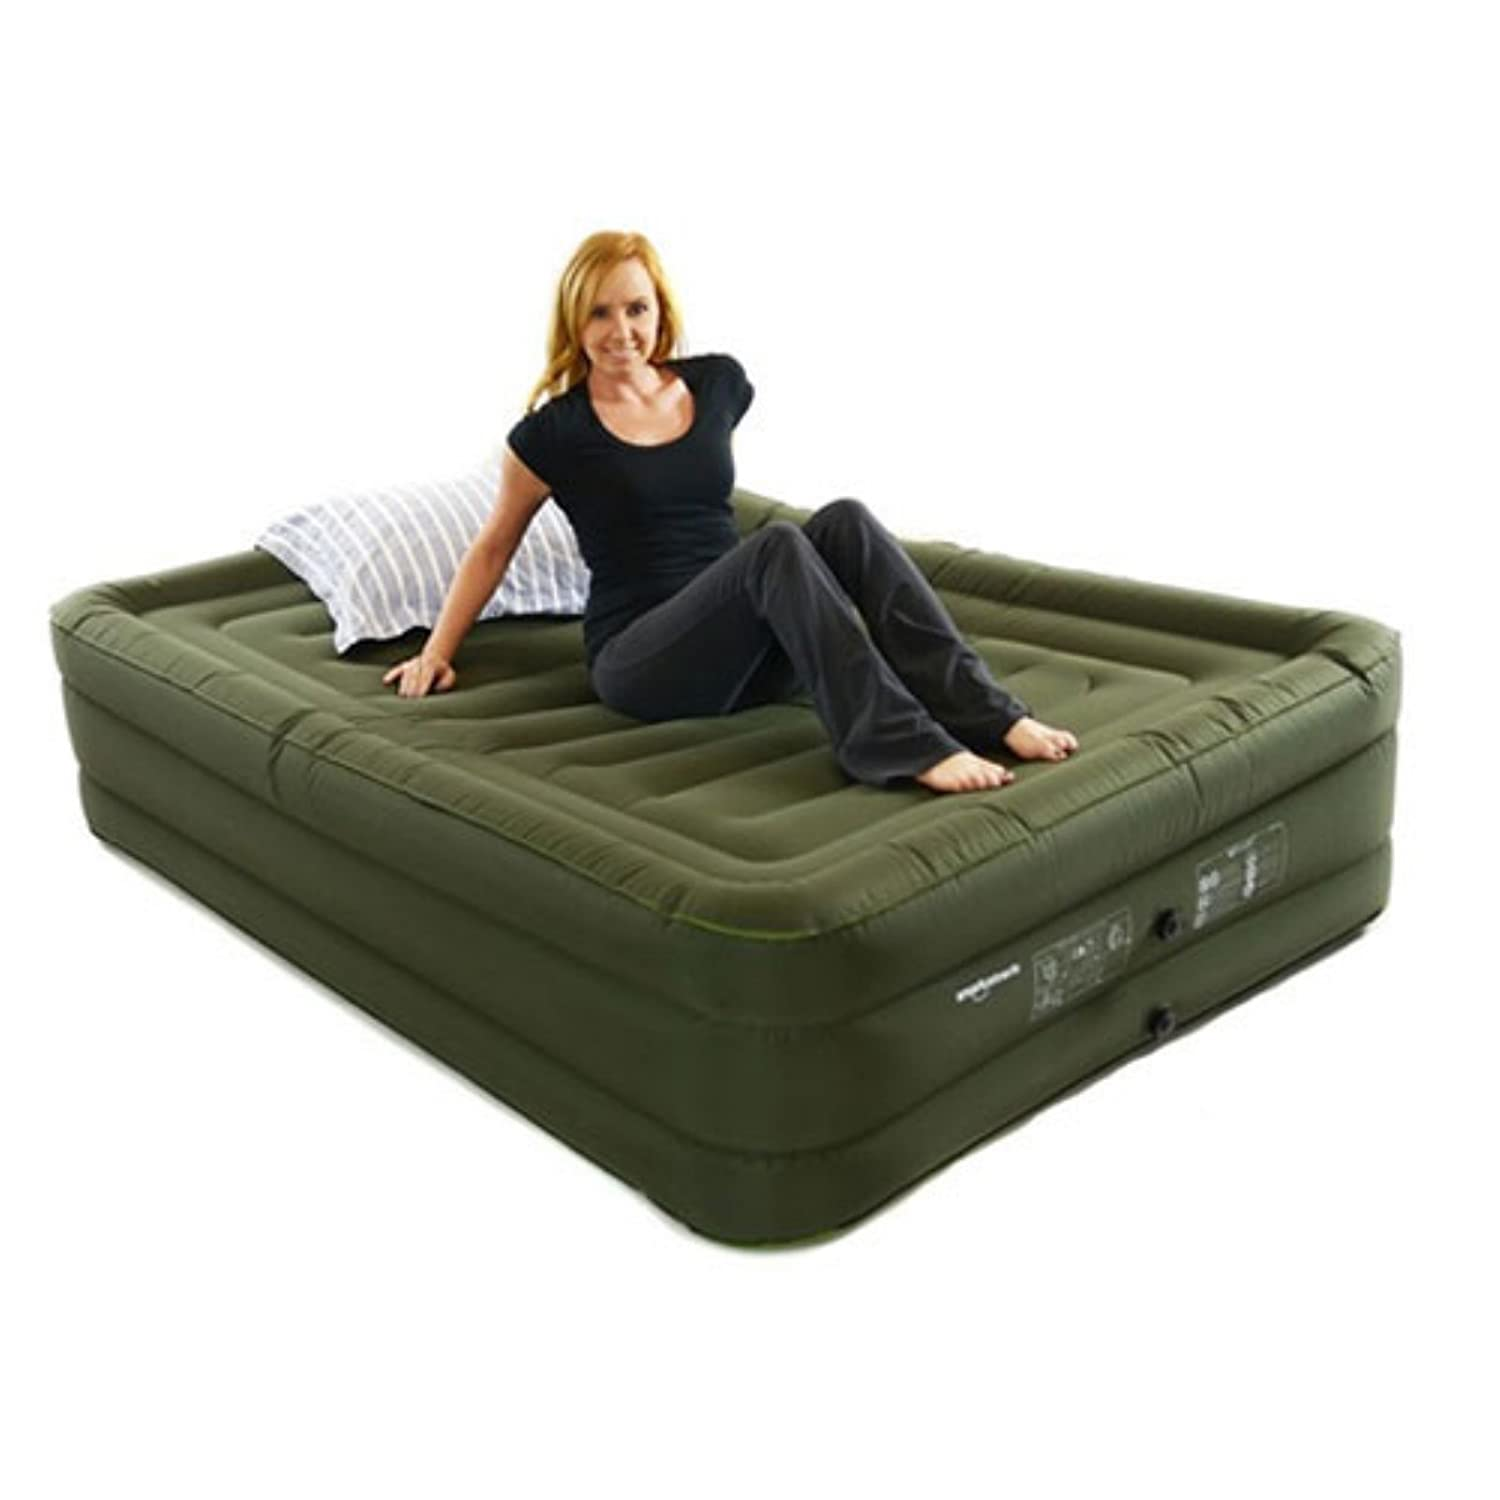 mattress headboard king raised air classic aerobed with comfort from bed